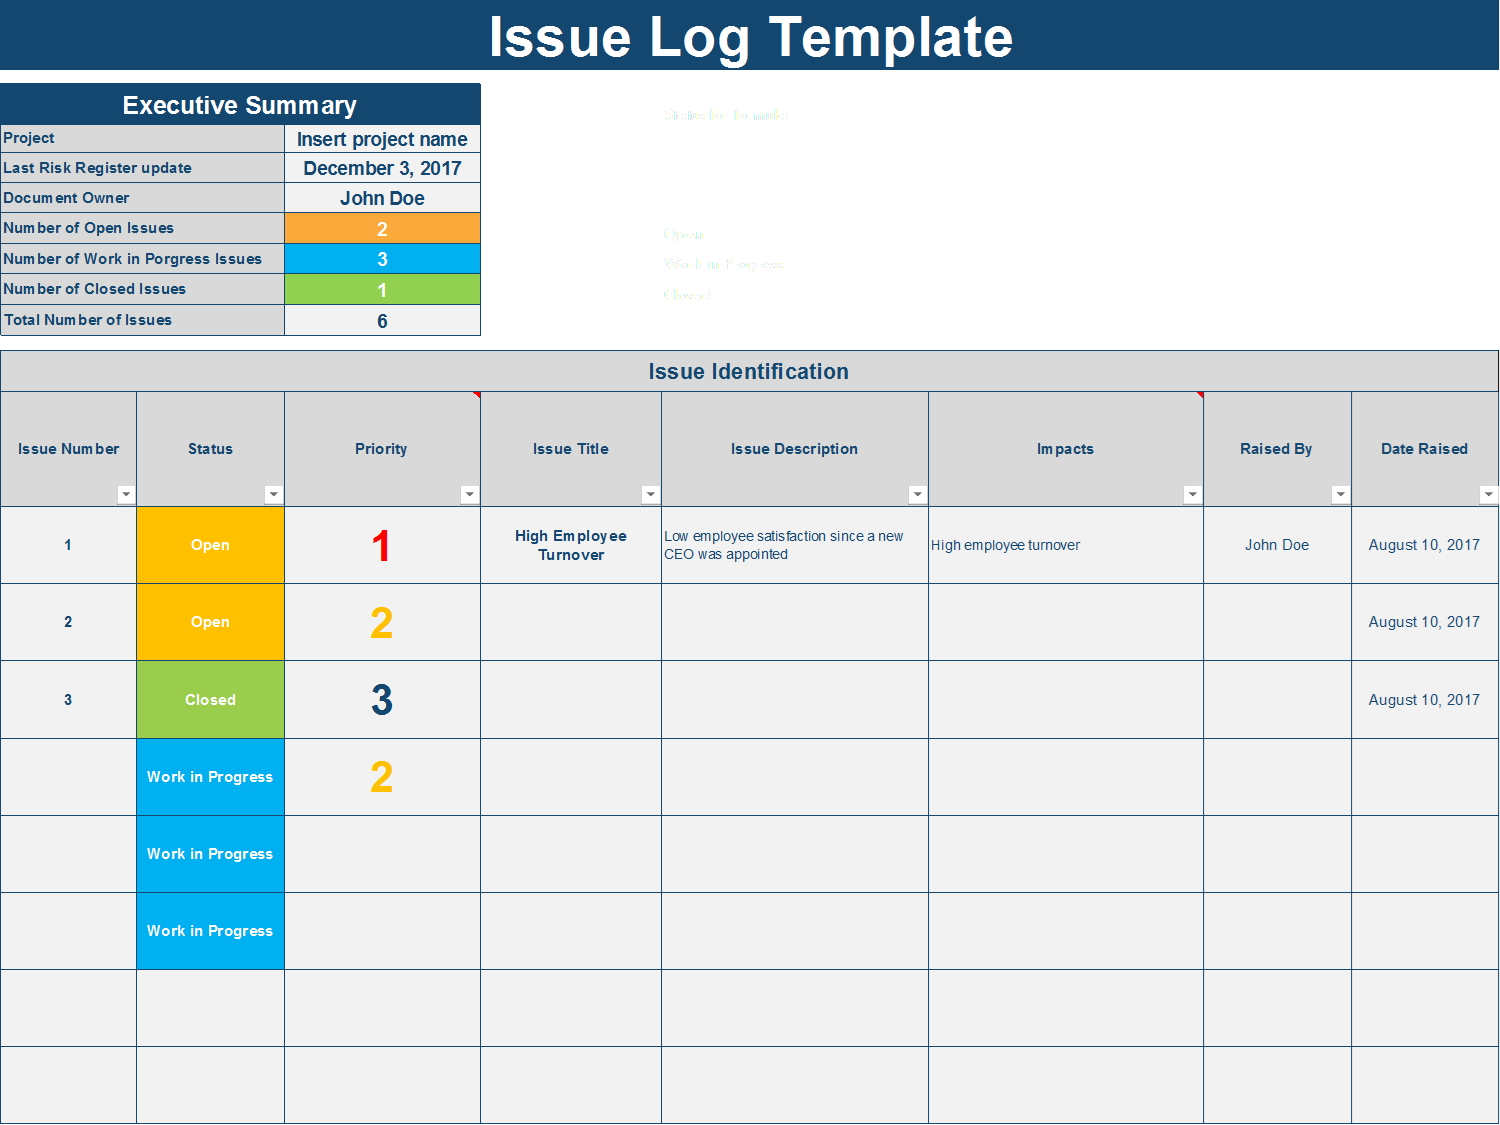 Document Of Issue Log Template Excel Inside Issue Log Template Excel For Google Spreadsheet